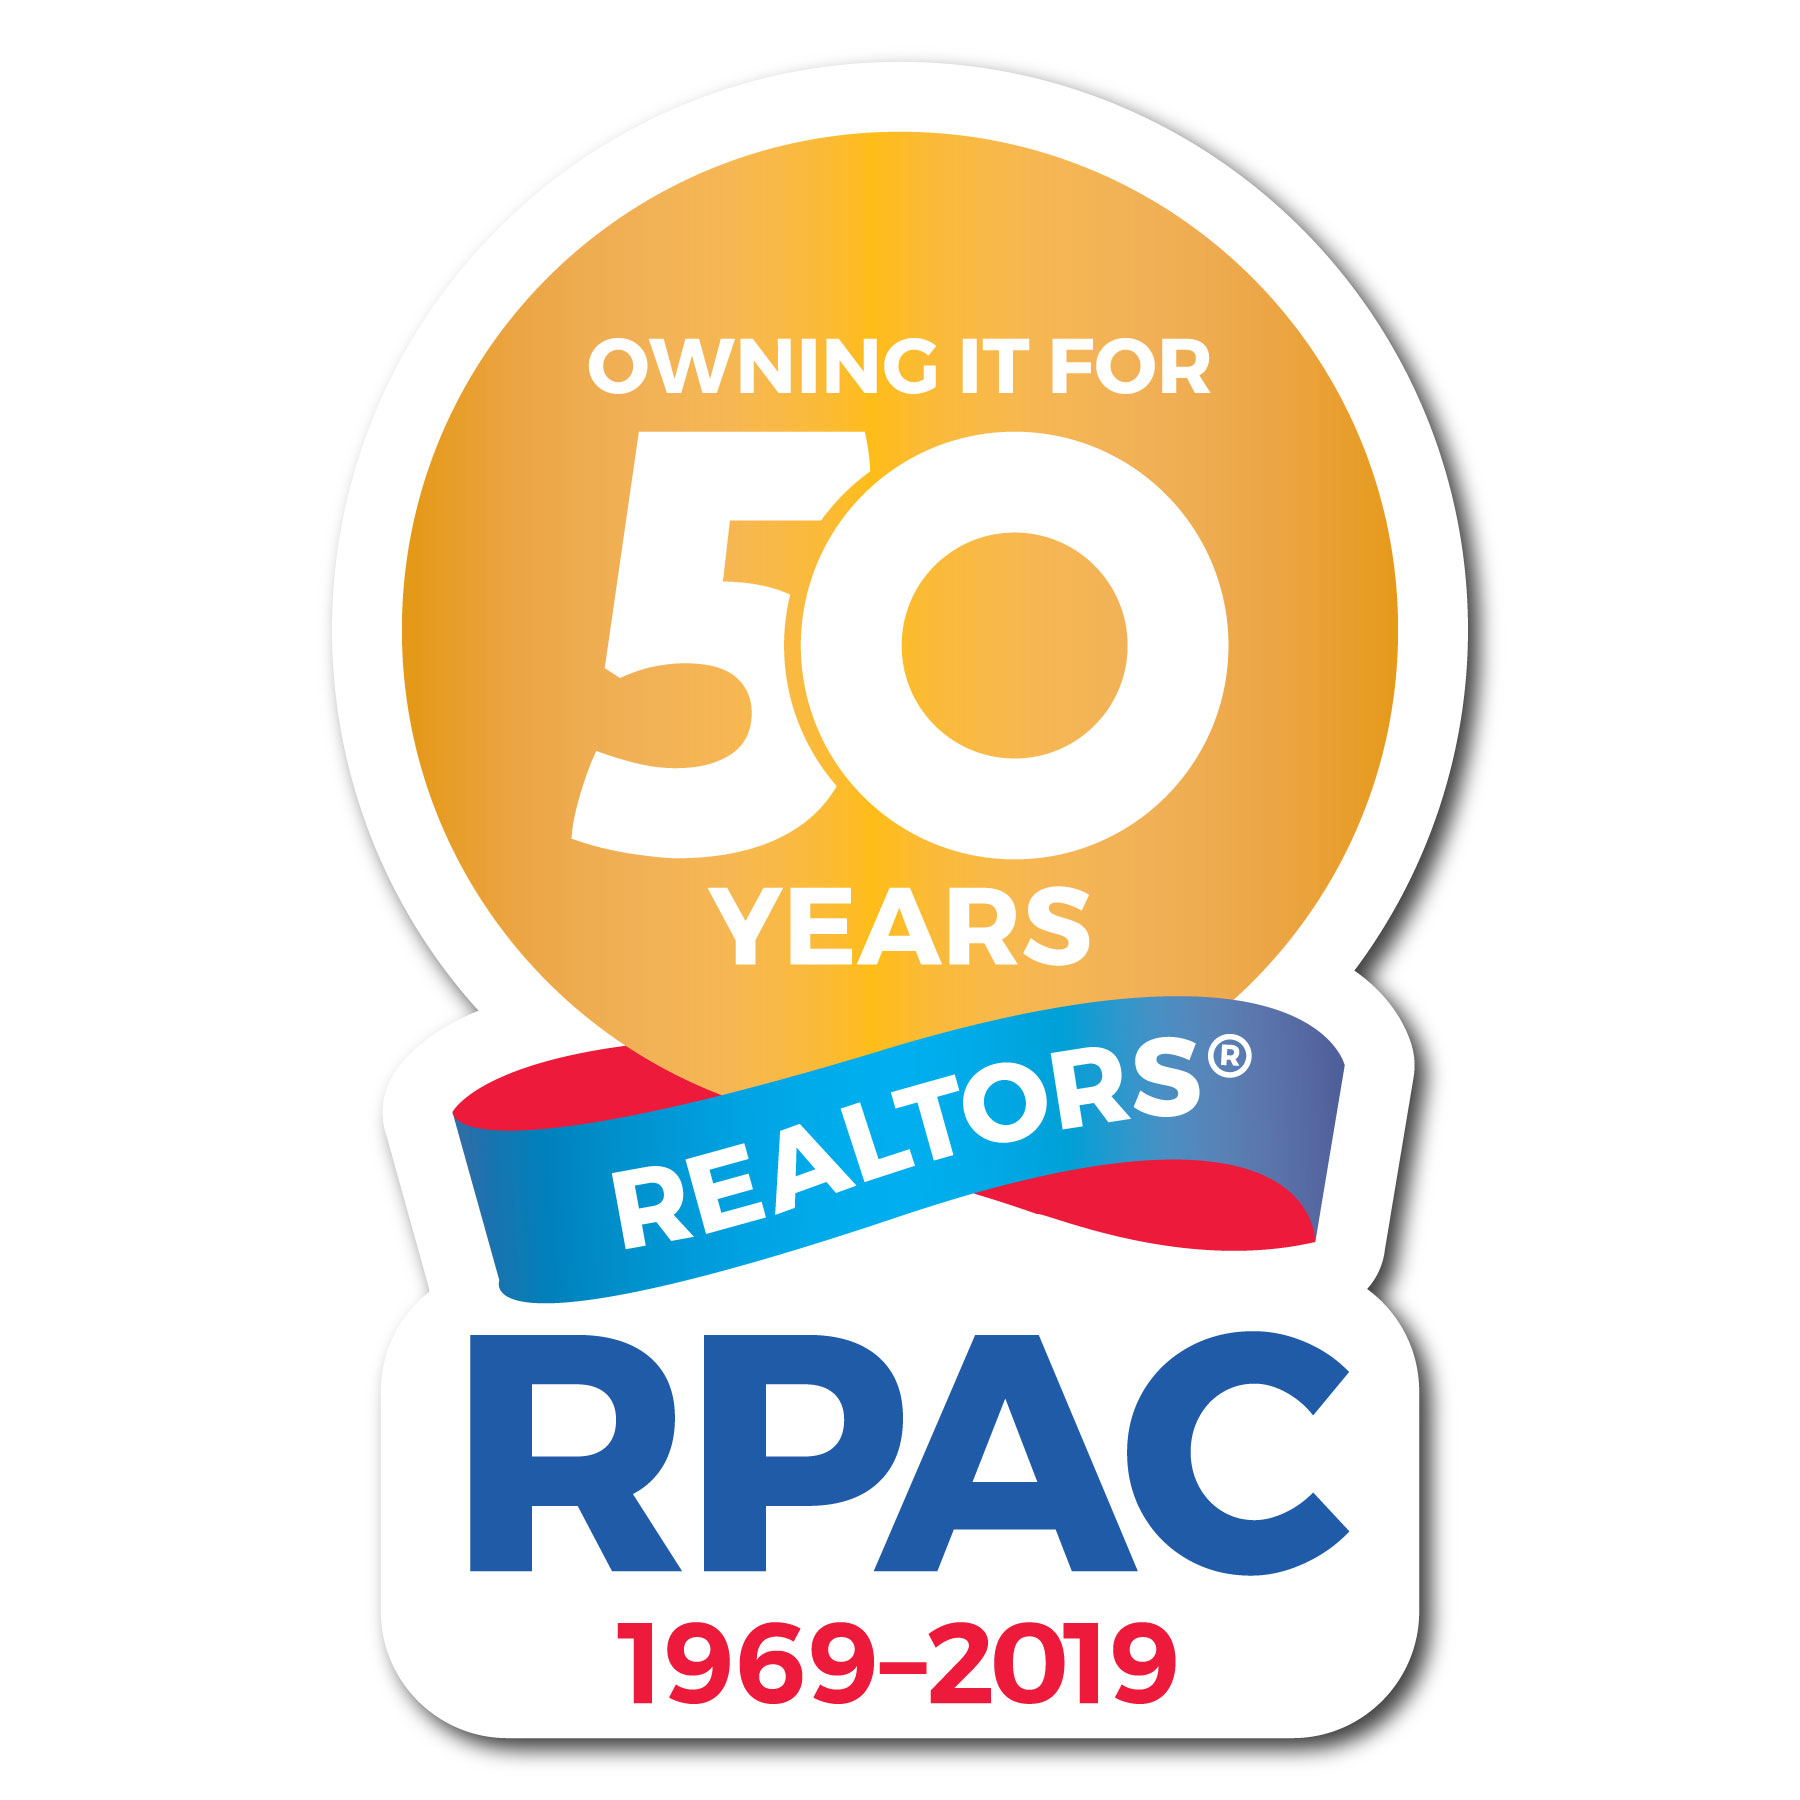 RPAC 50th Anniversary Decals Stickers,Decals,Clings,Stickies